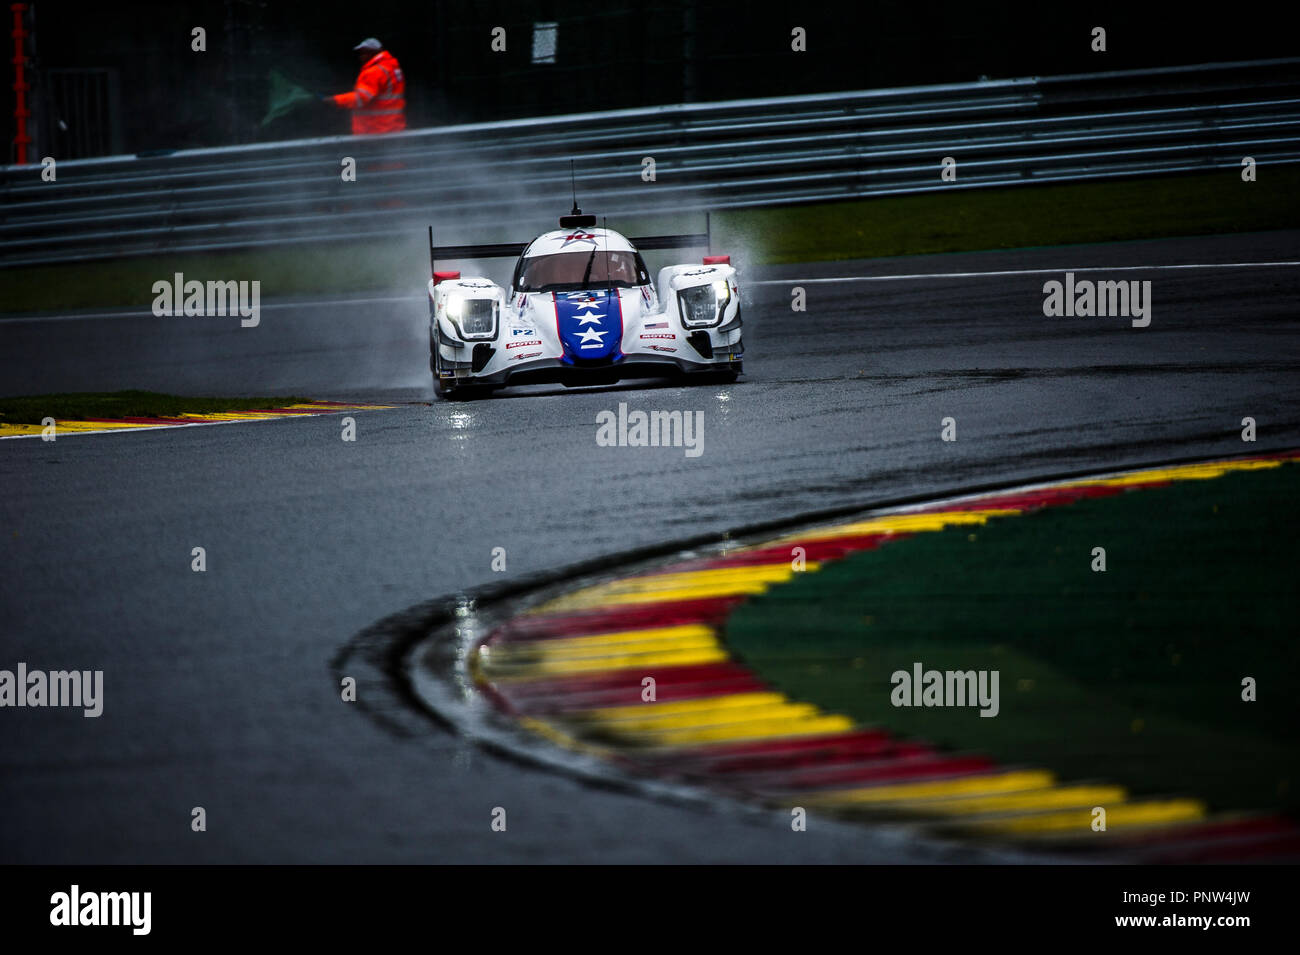 ELMS 2018 SPA FRANCORCHAMPS Stock Photo